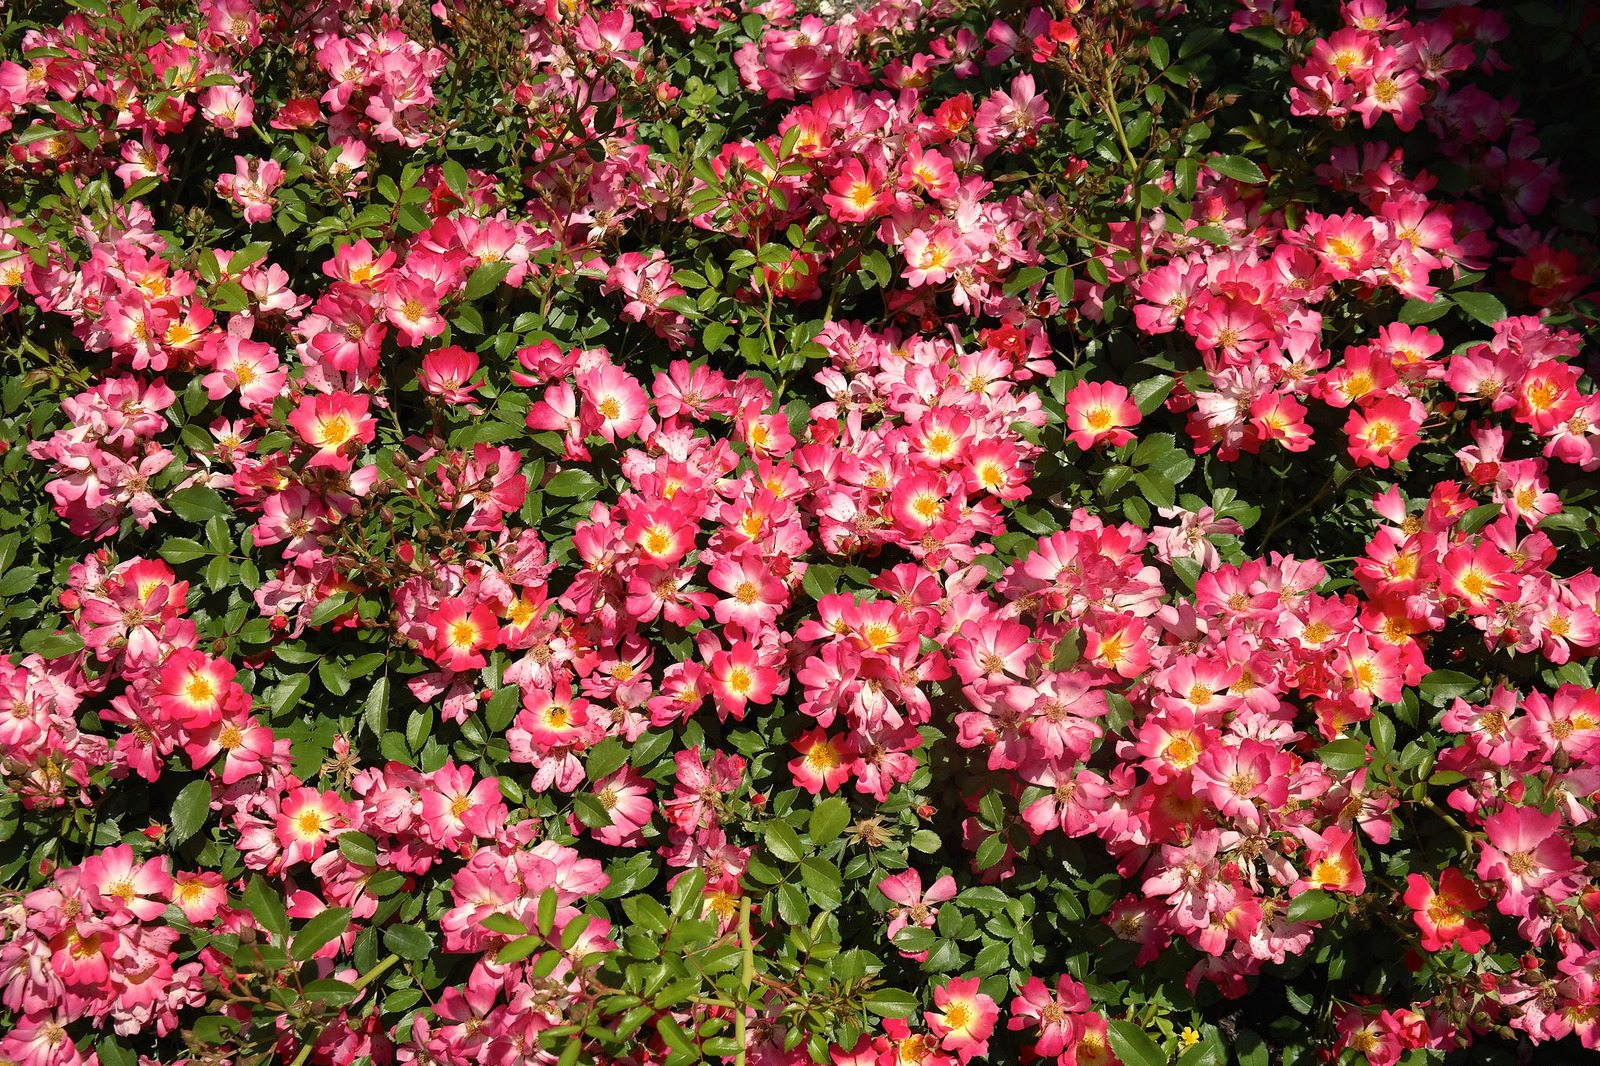 Companion Plants For Drift Roses Plants That Grow Well